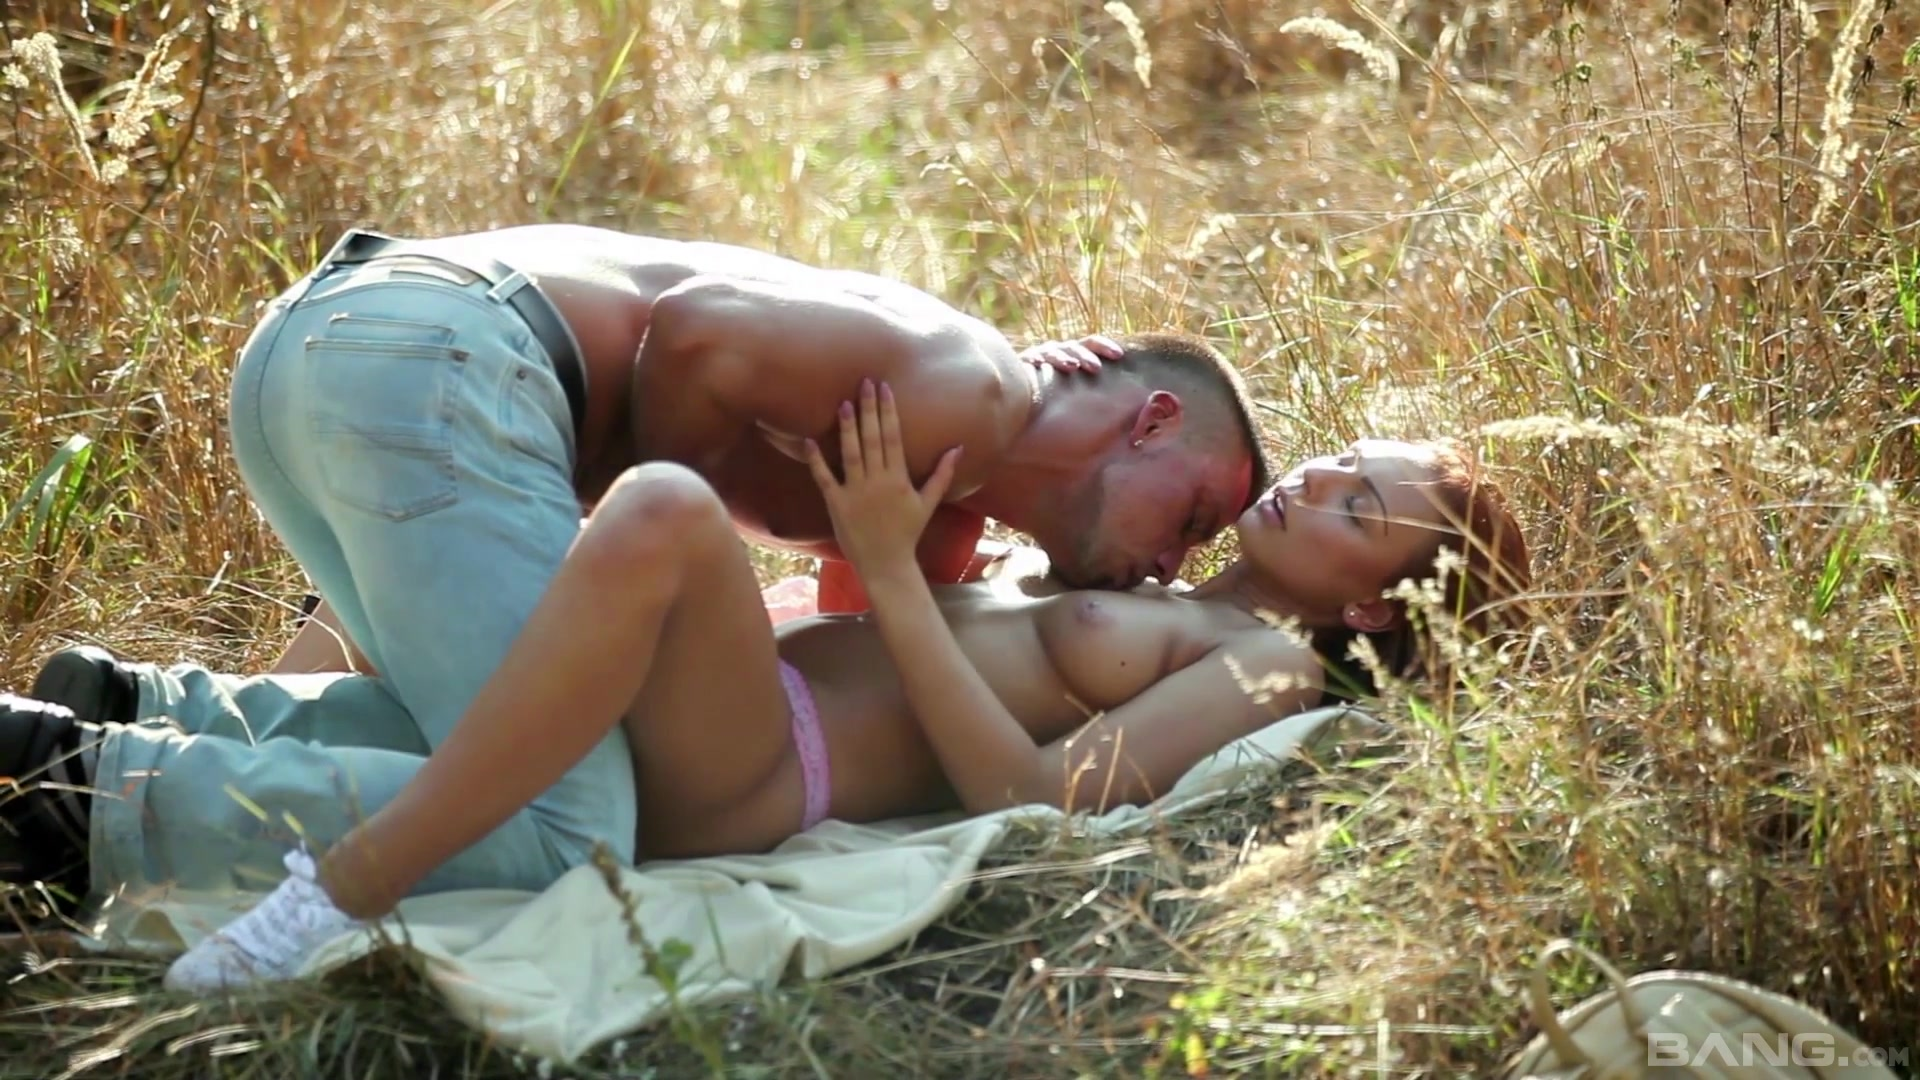 Redhead sucks dick in the sun and loves the sperm on her boobs